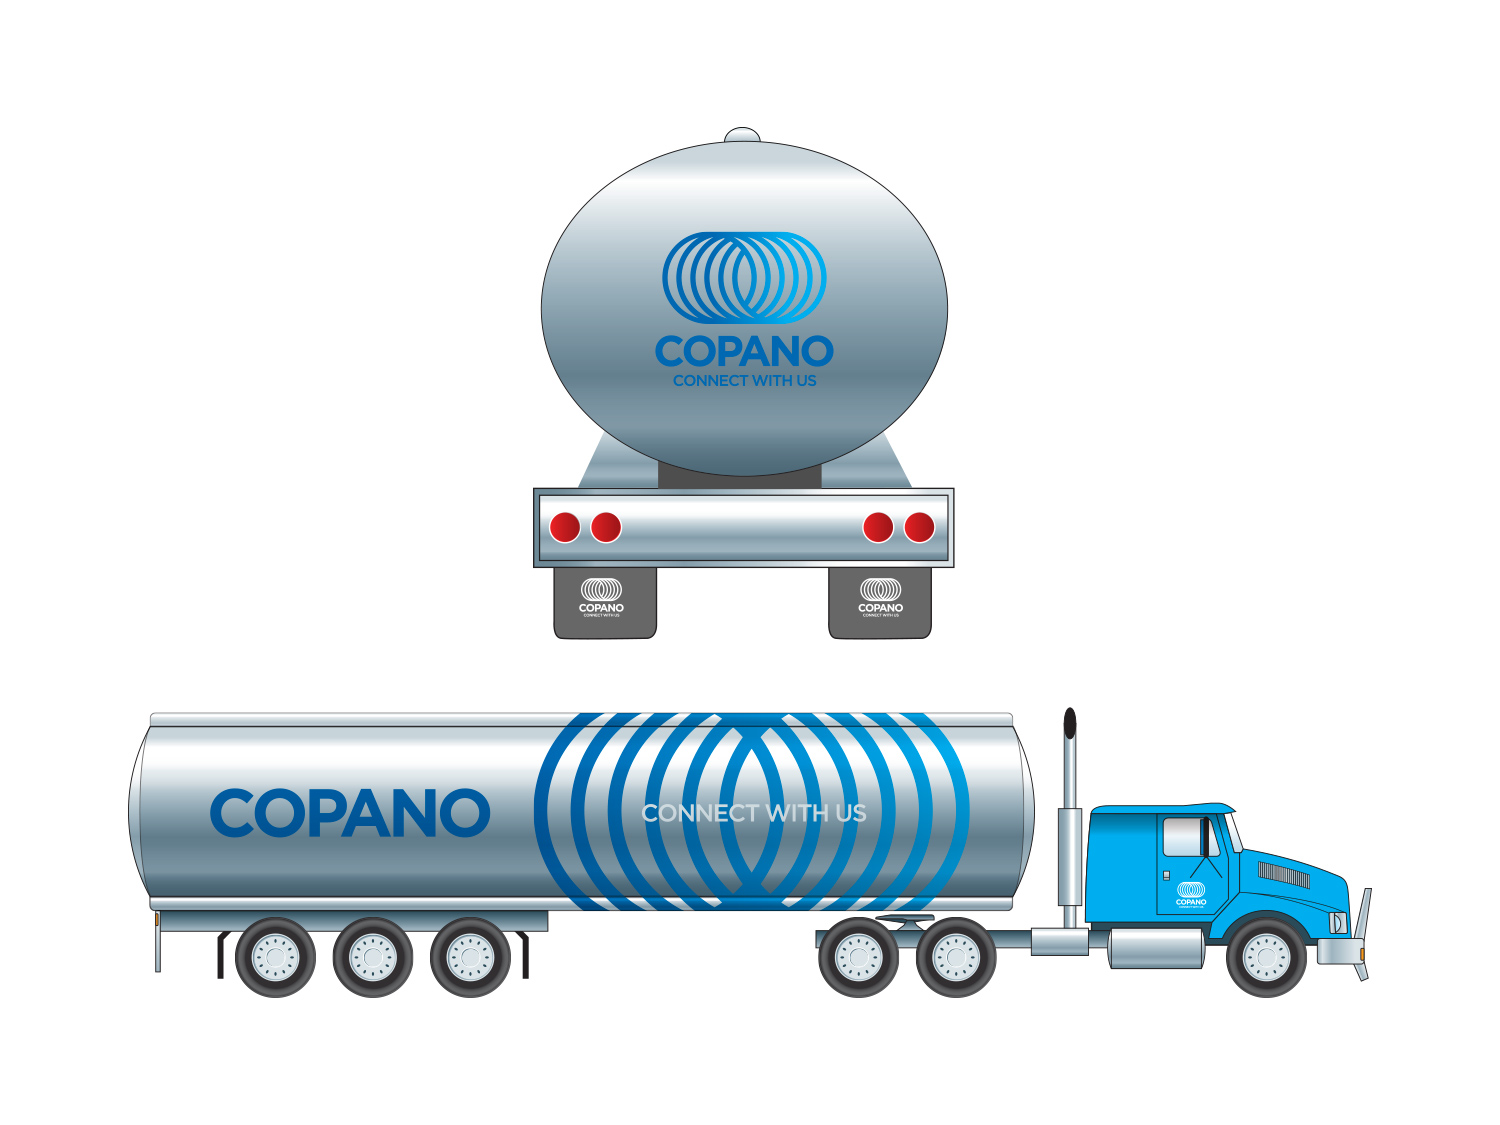 Image of Copano brand on vehicles